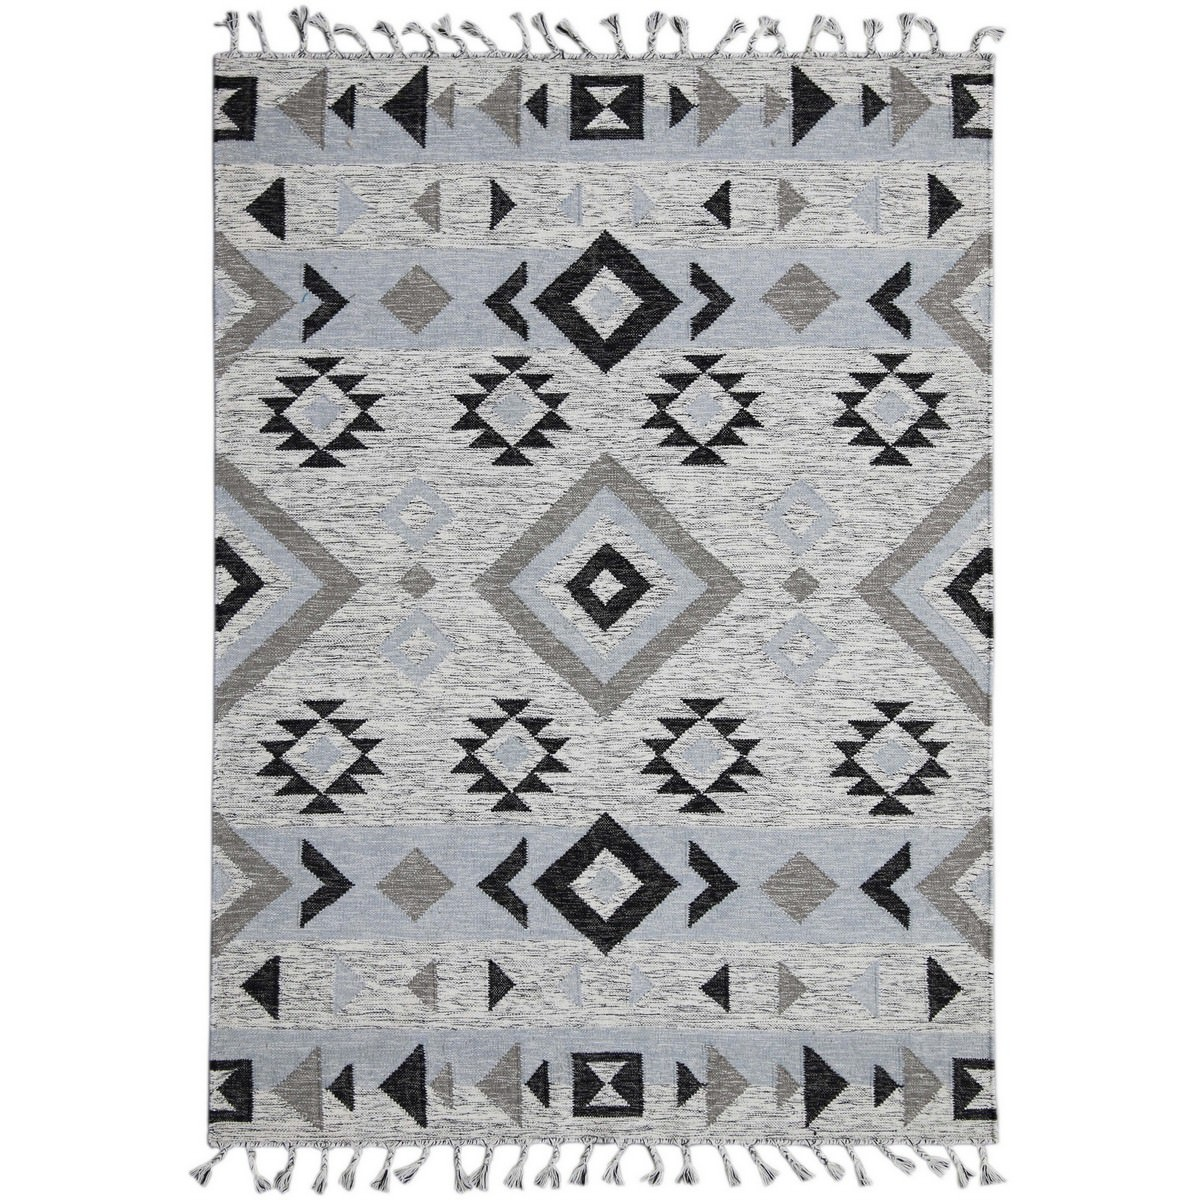 Artifact Handwoven Wool Rug , 160x230cm, Silver